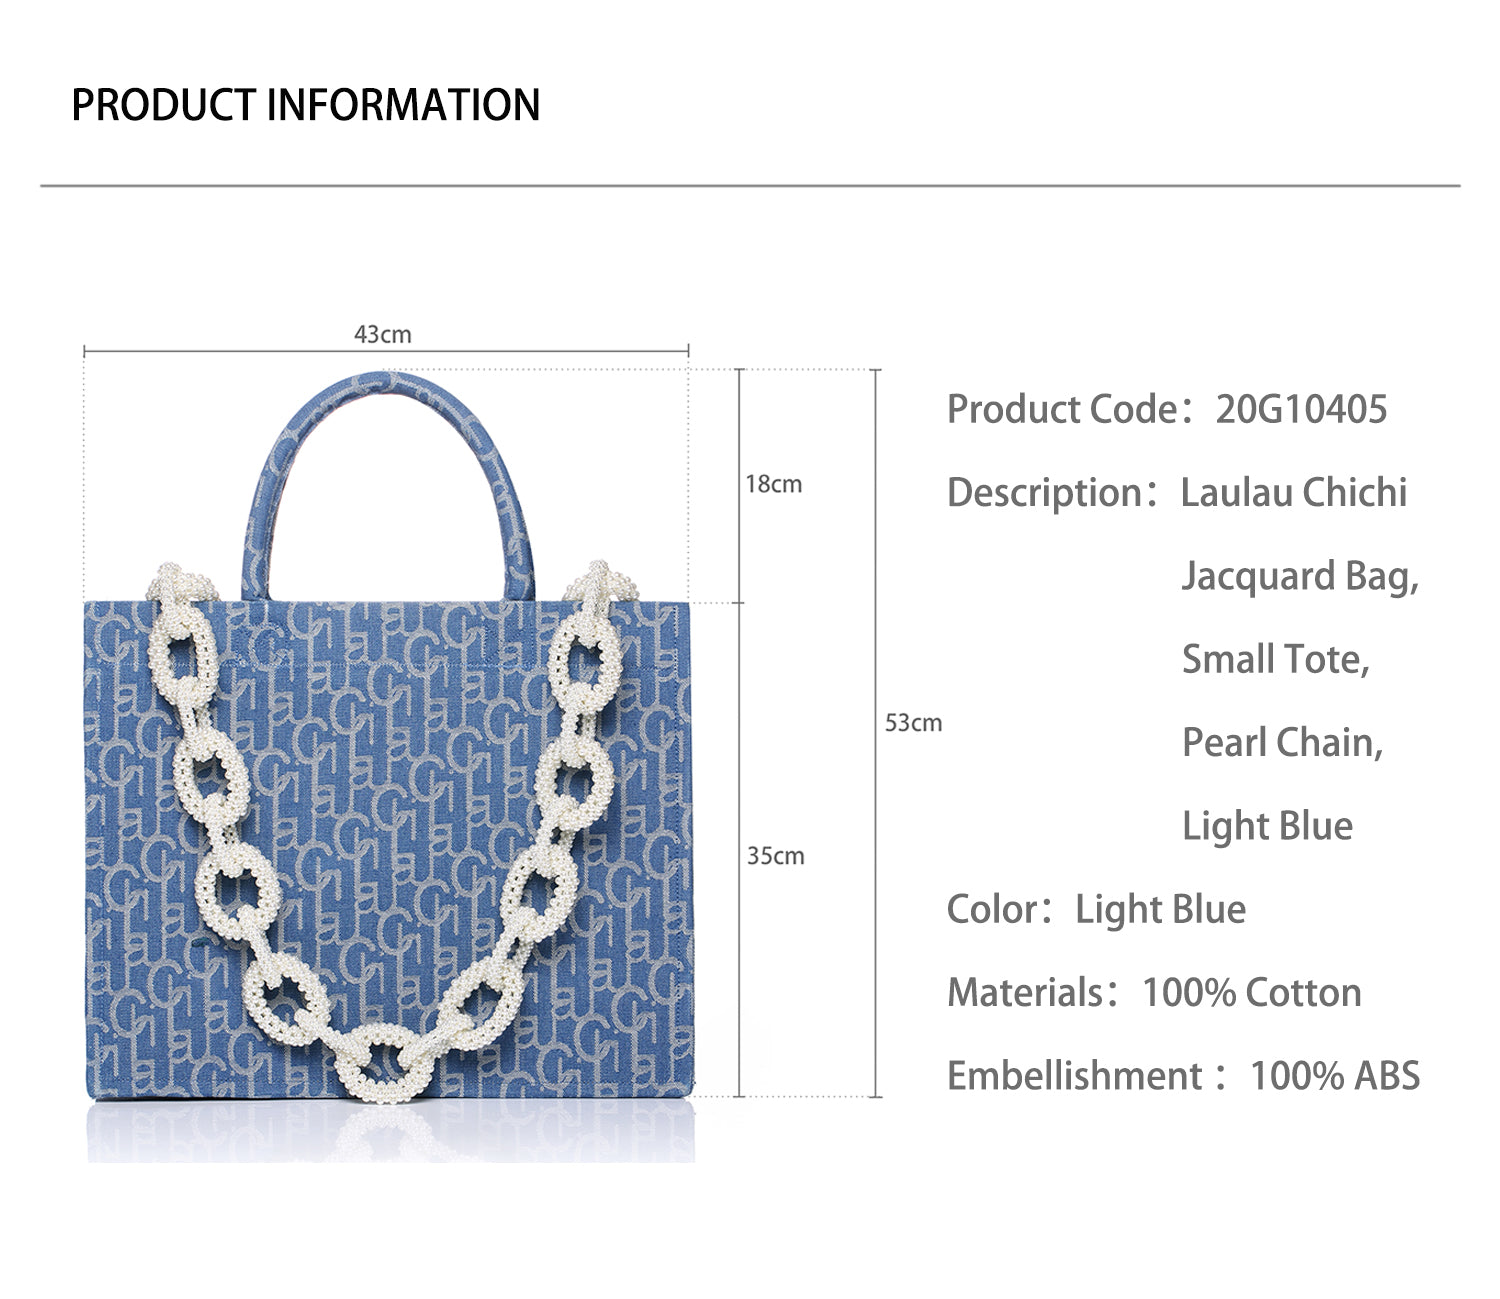 Laulau Chichi Jacquard Bag, Large Tote, Pearl Chain, Light Blue